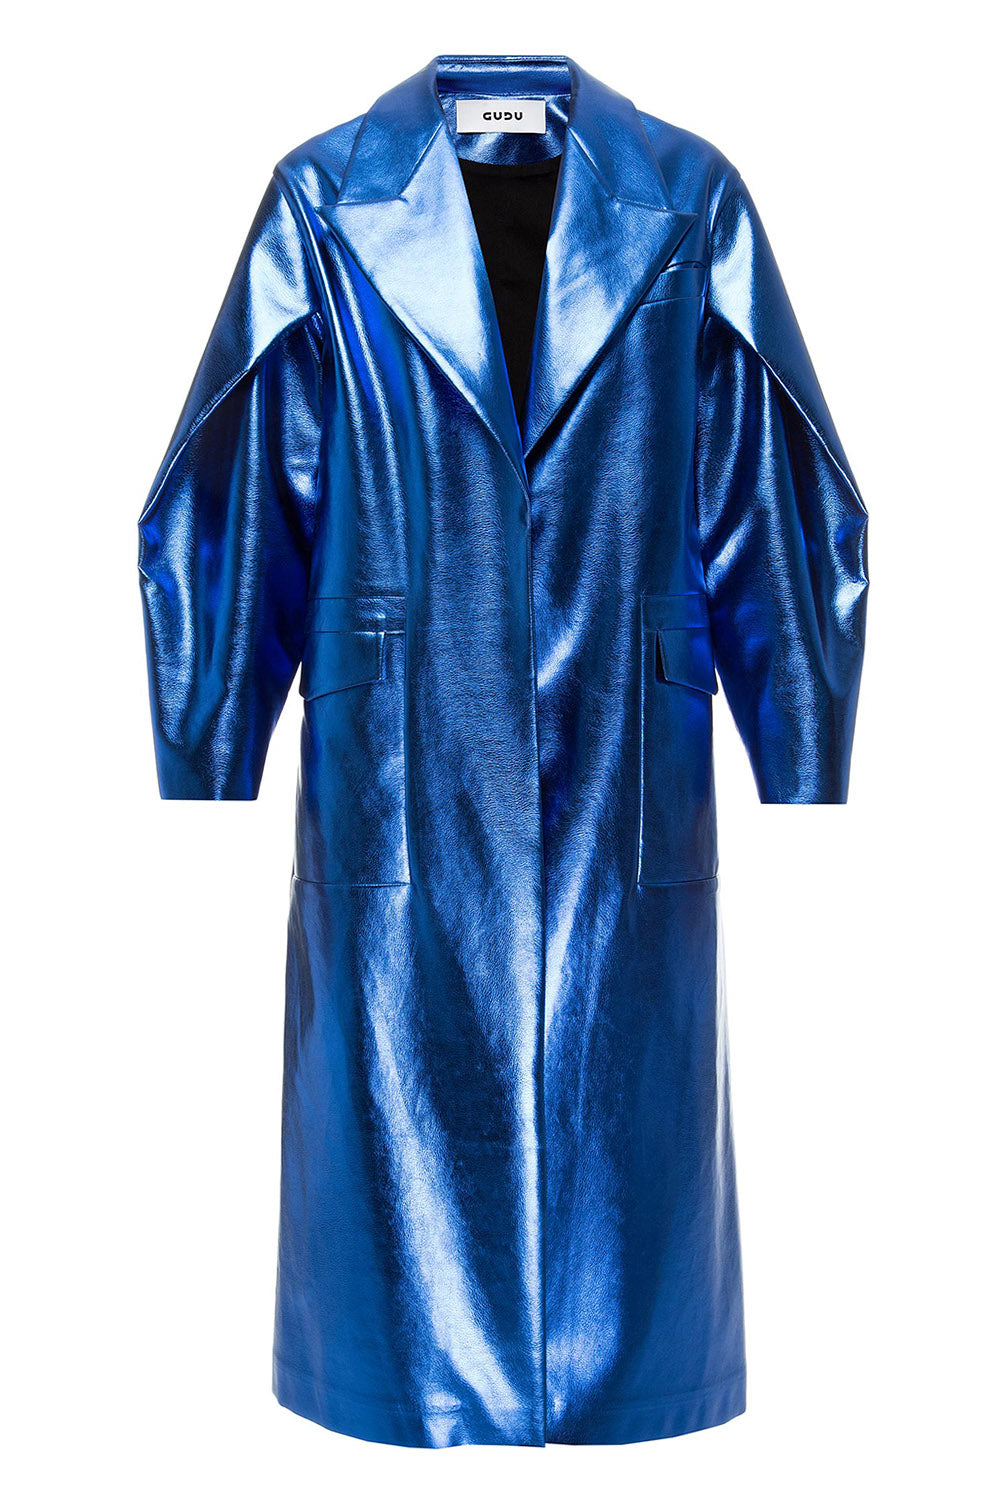 Electric blue coat